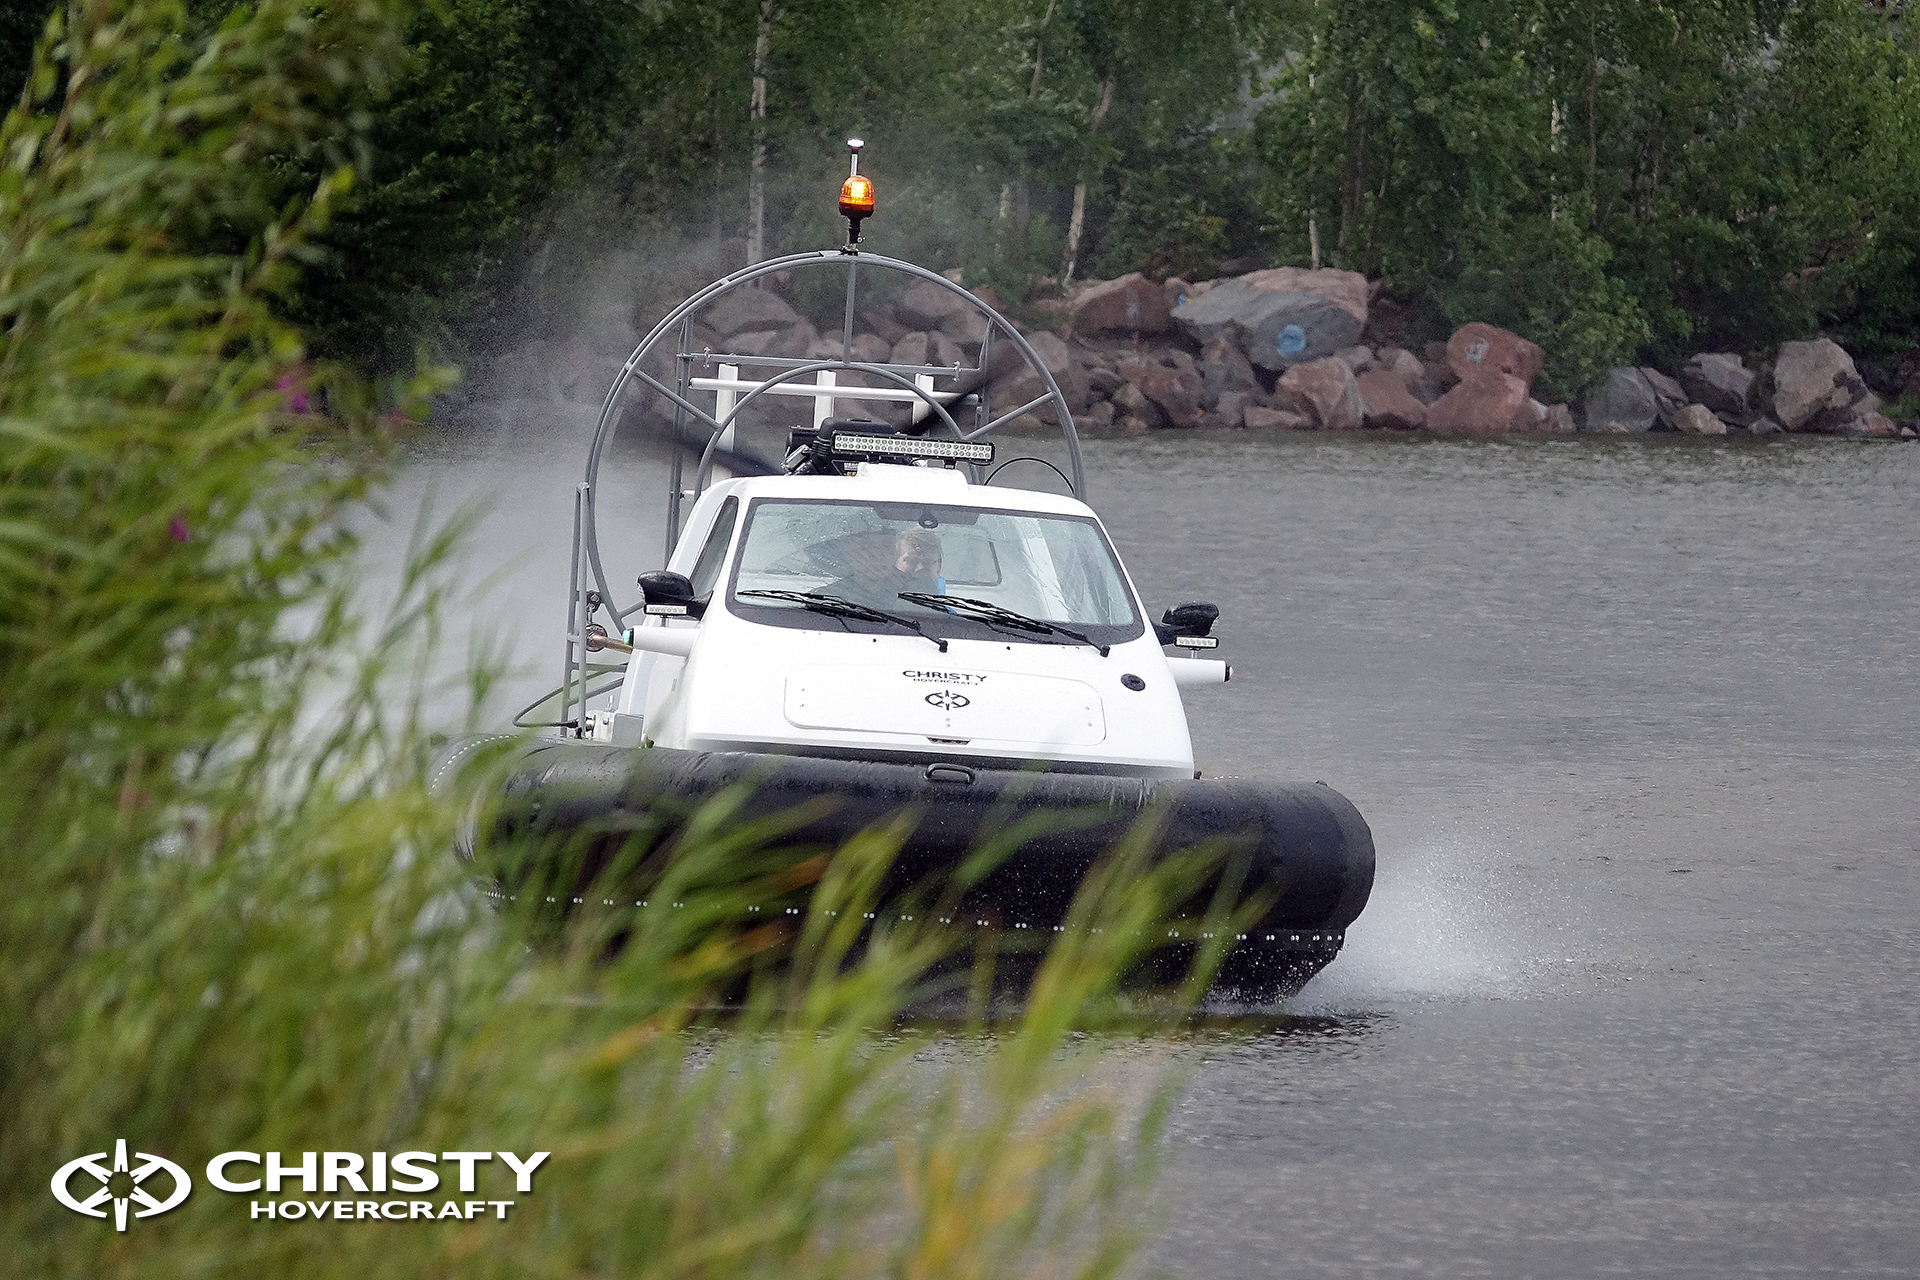 Hovercraft Christy 463 PC in Storm 290618 13.jpg | фото №11